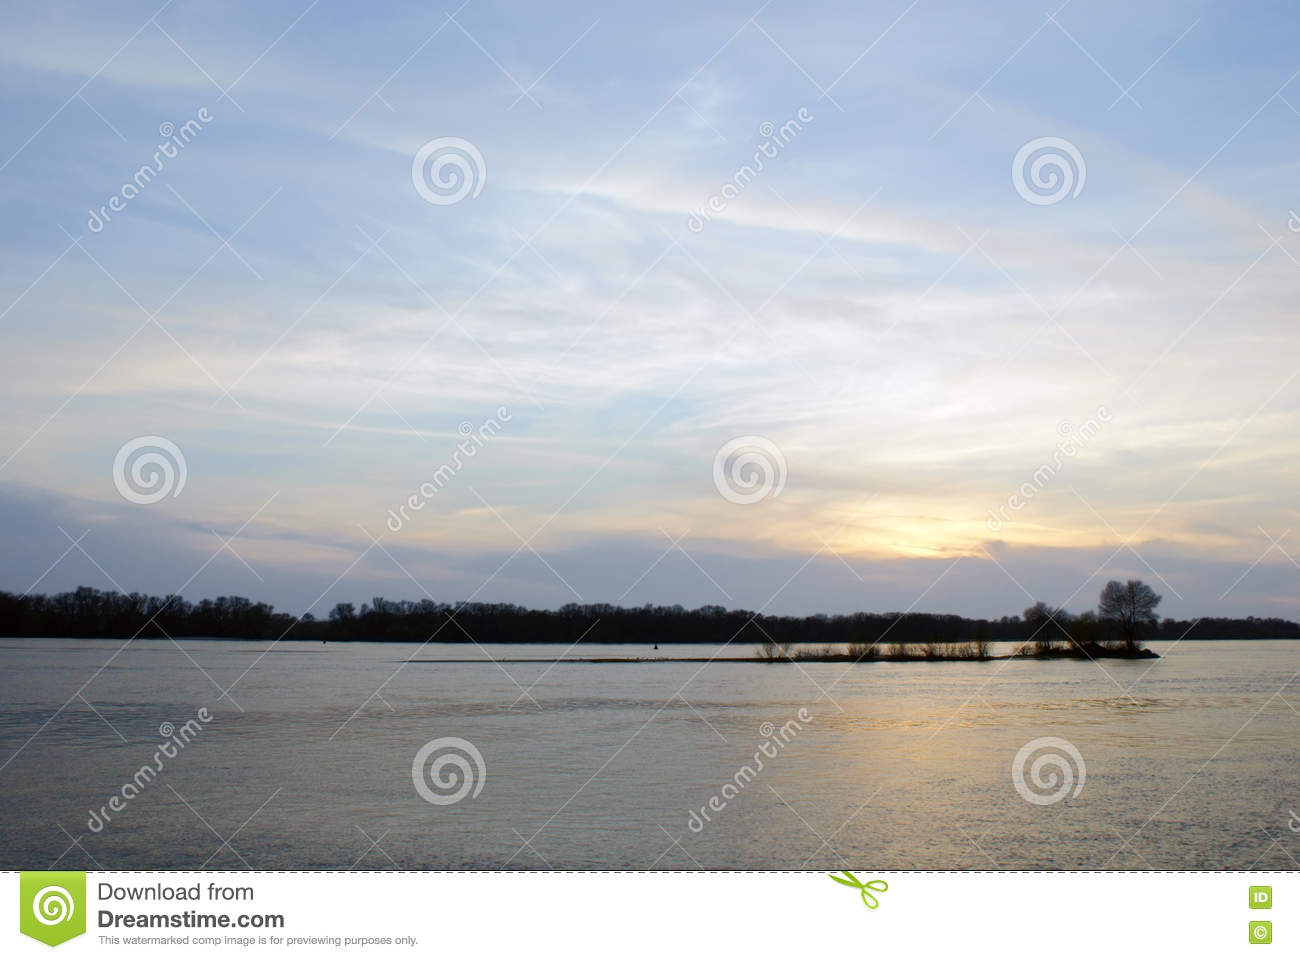 Abstract background of blue sky with clouds at sunset over the river